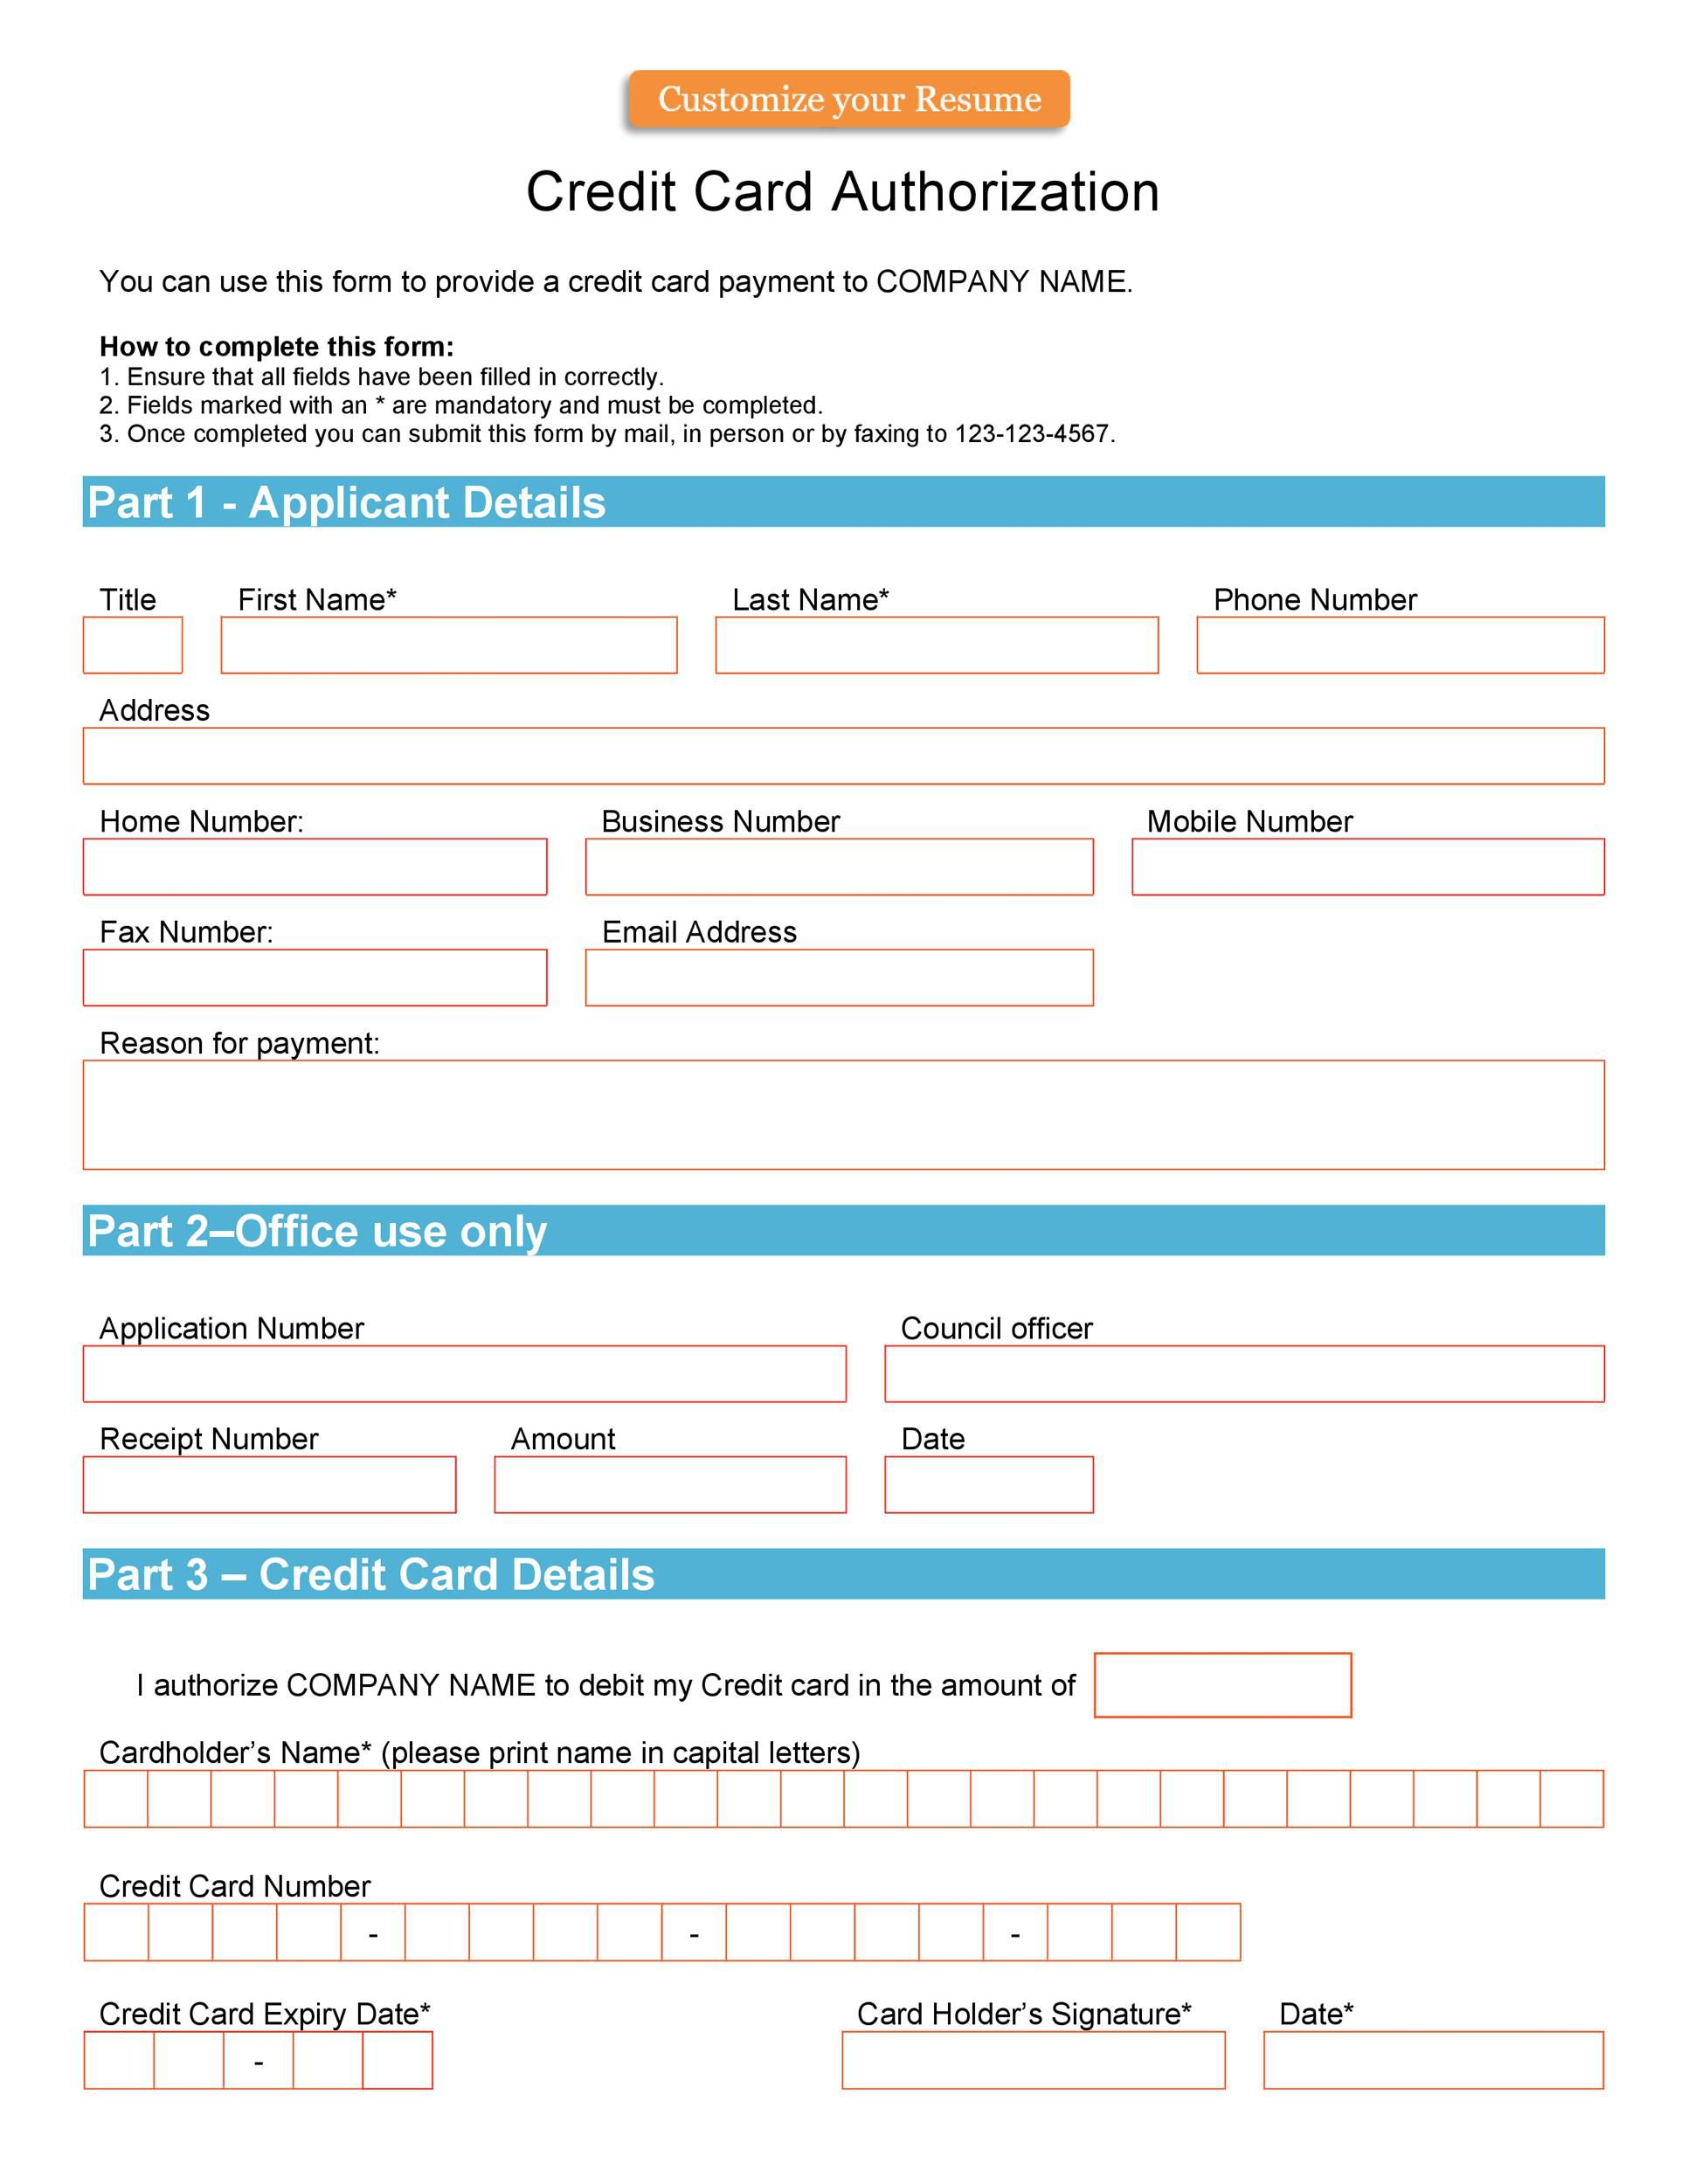 004 Unusual Credit Card Usage Request Form Template Example Full